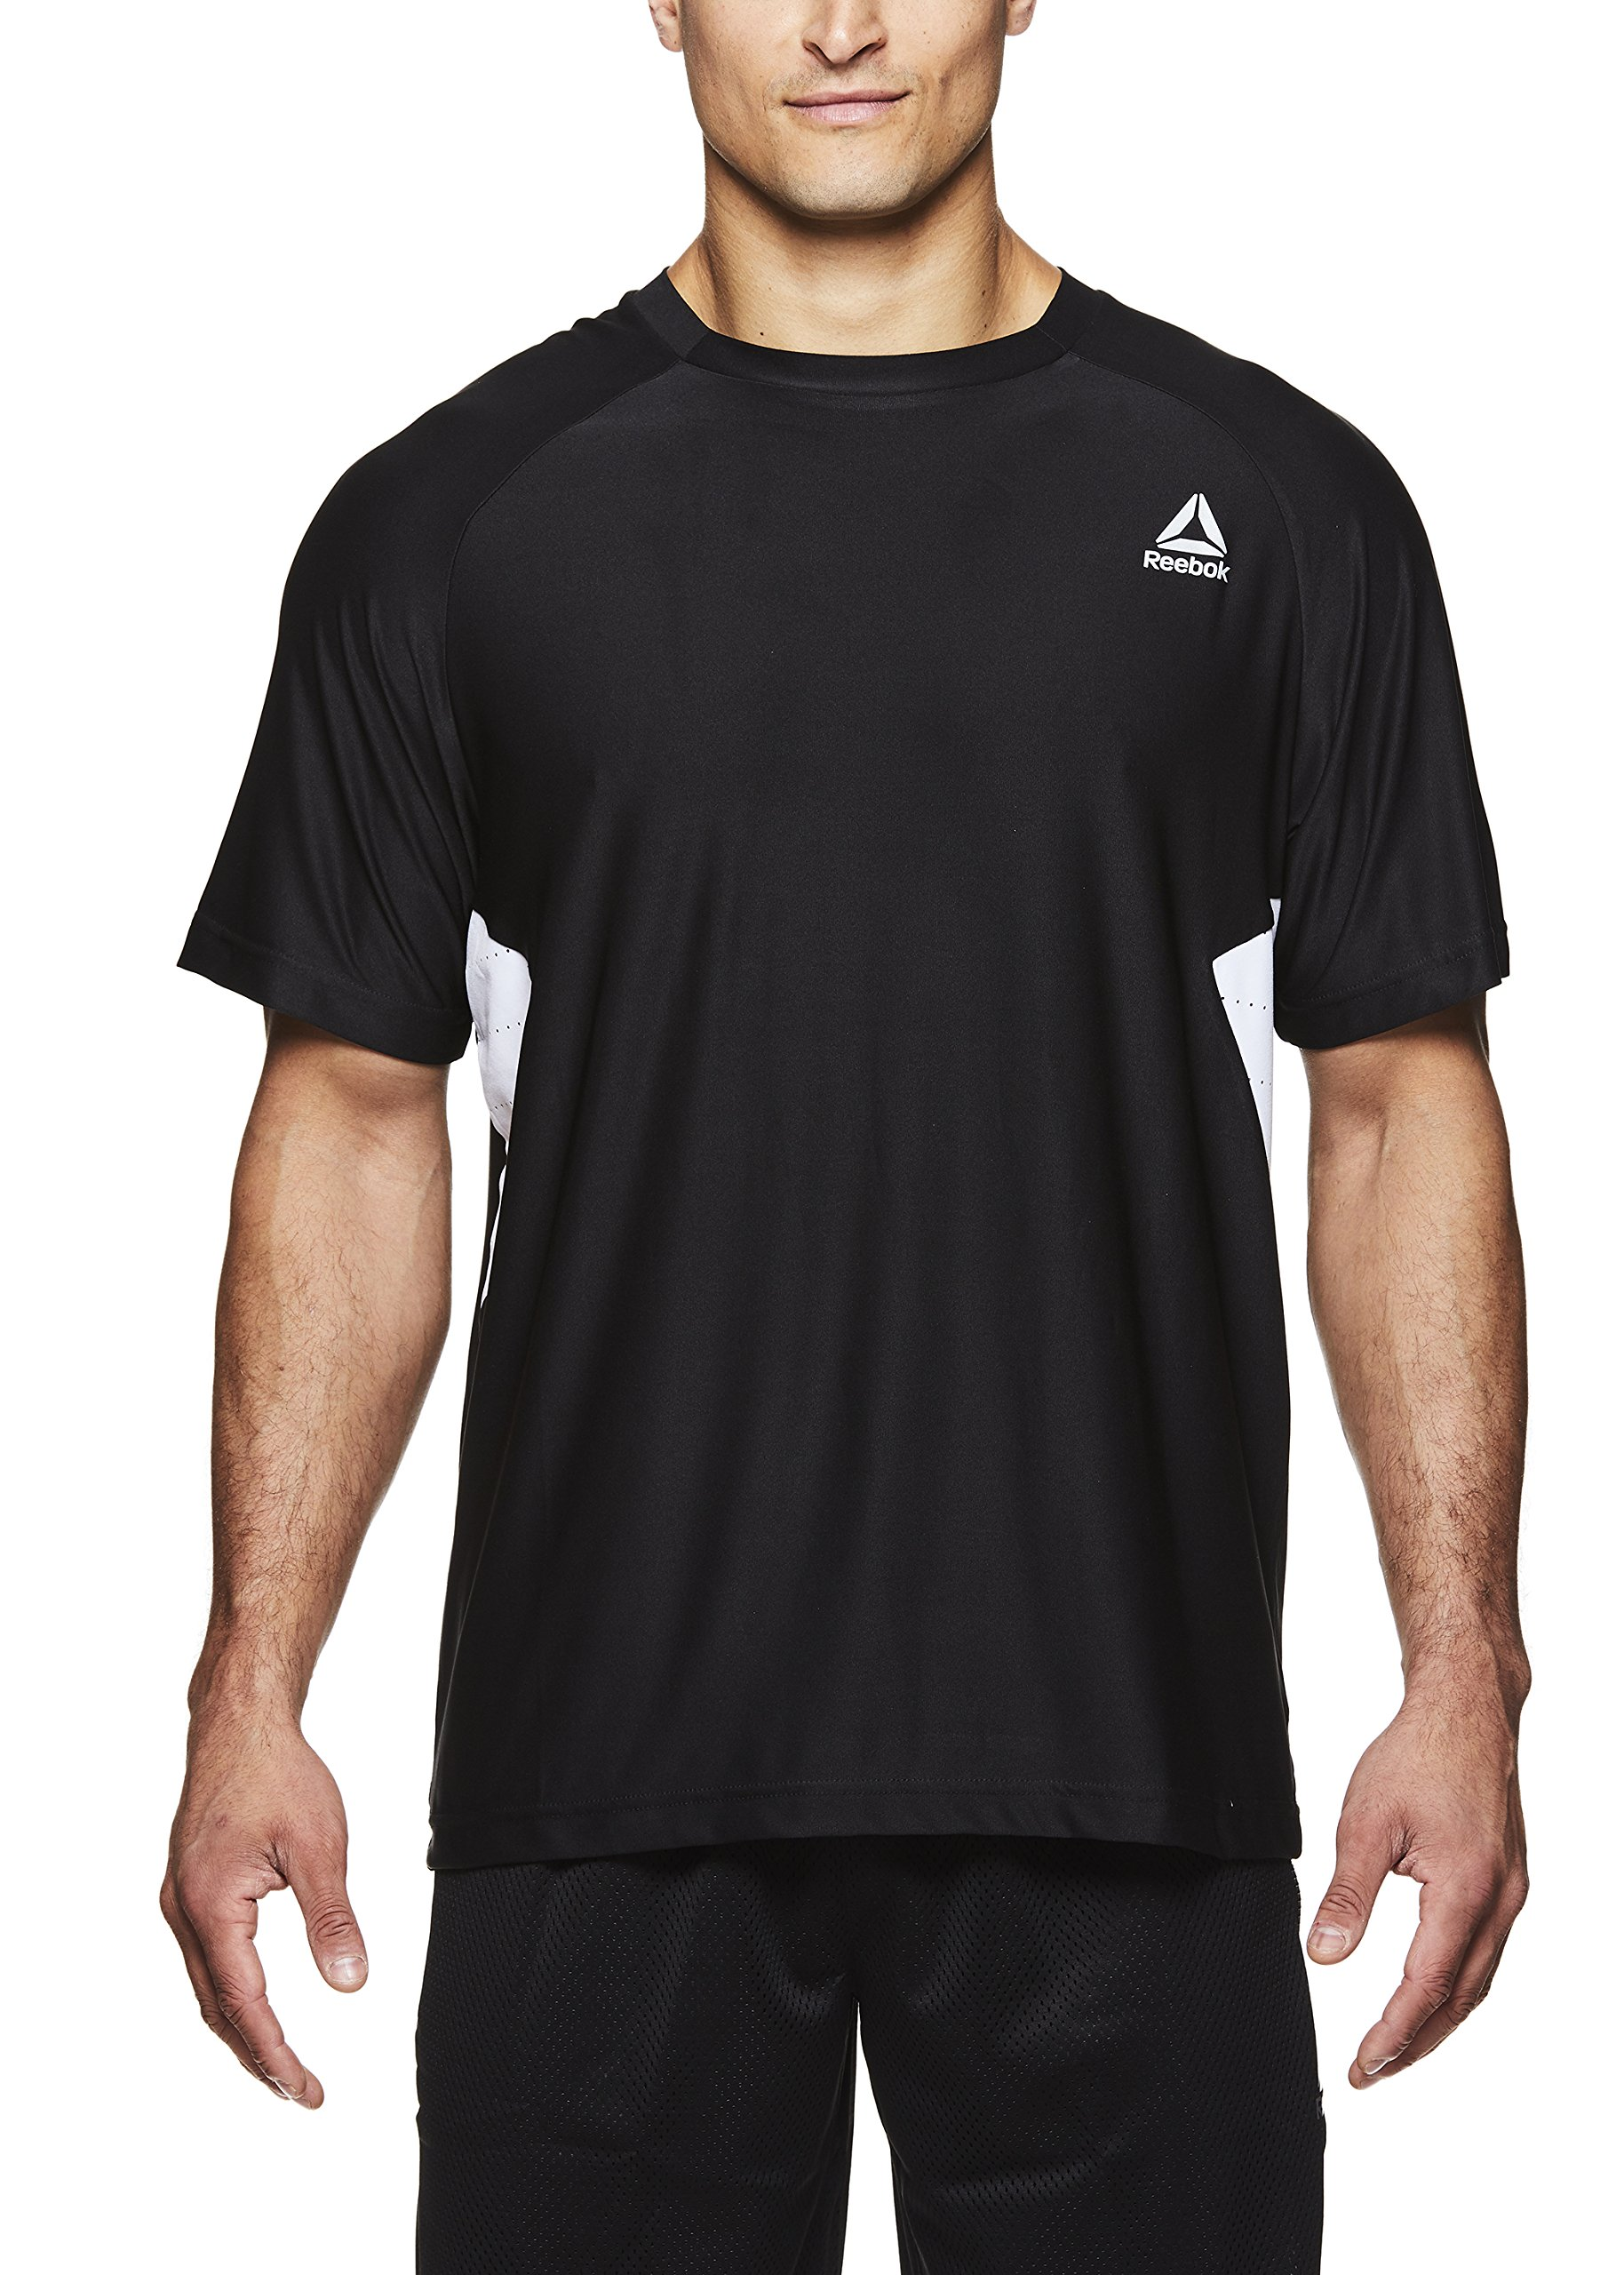 Reebok Men's Supersonic Crewneck Workout T-Shirt Designed with Performance Material - Black - Pace Hybrid, Small